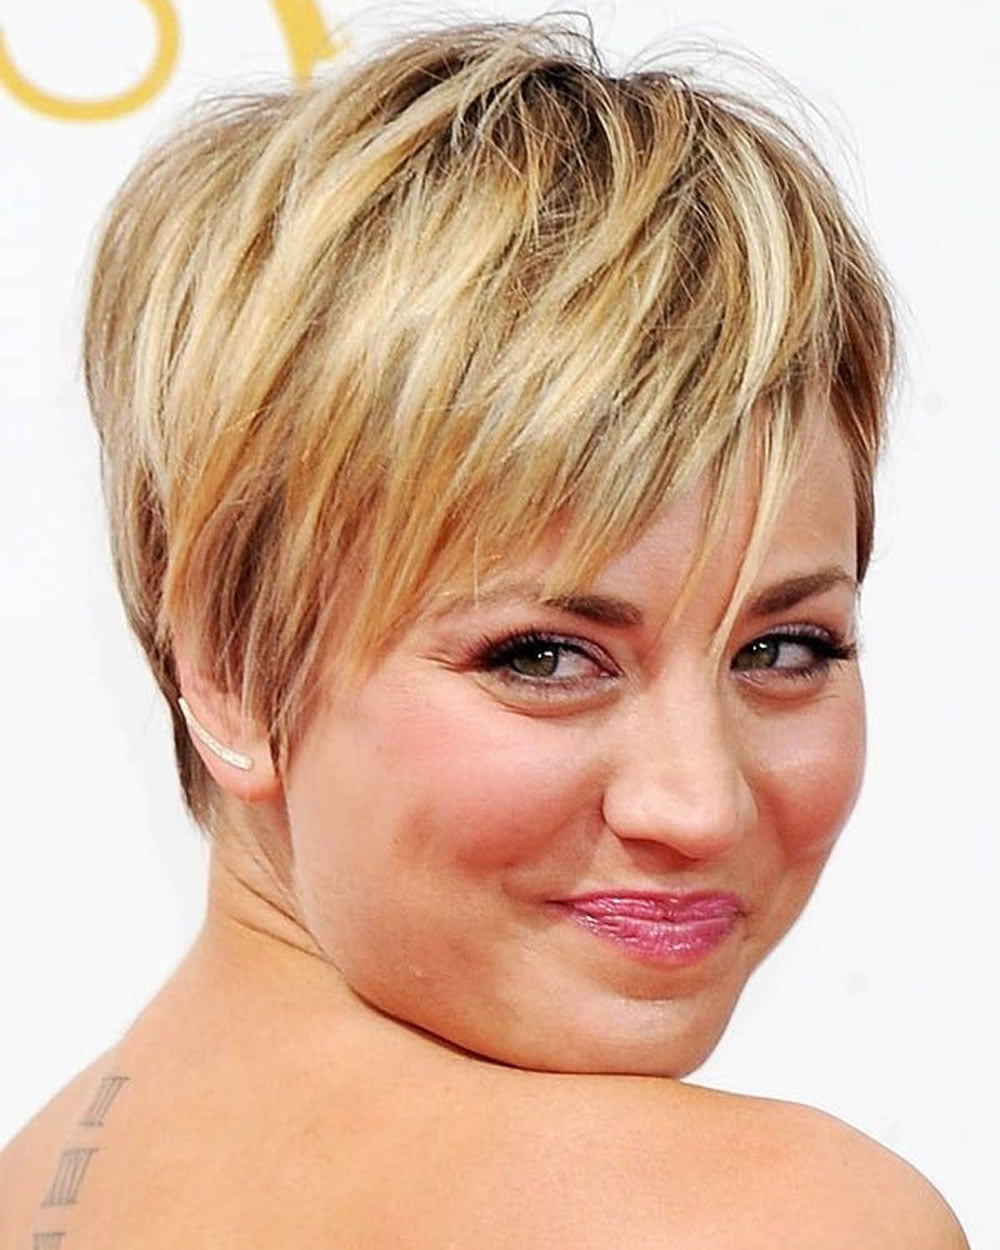 Pixie Hairstyles Fine Hair For Round Face 2018 2019